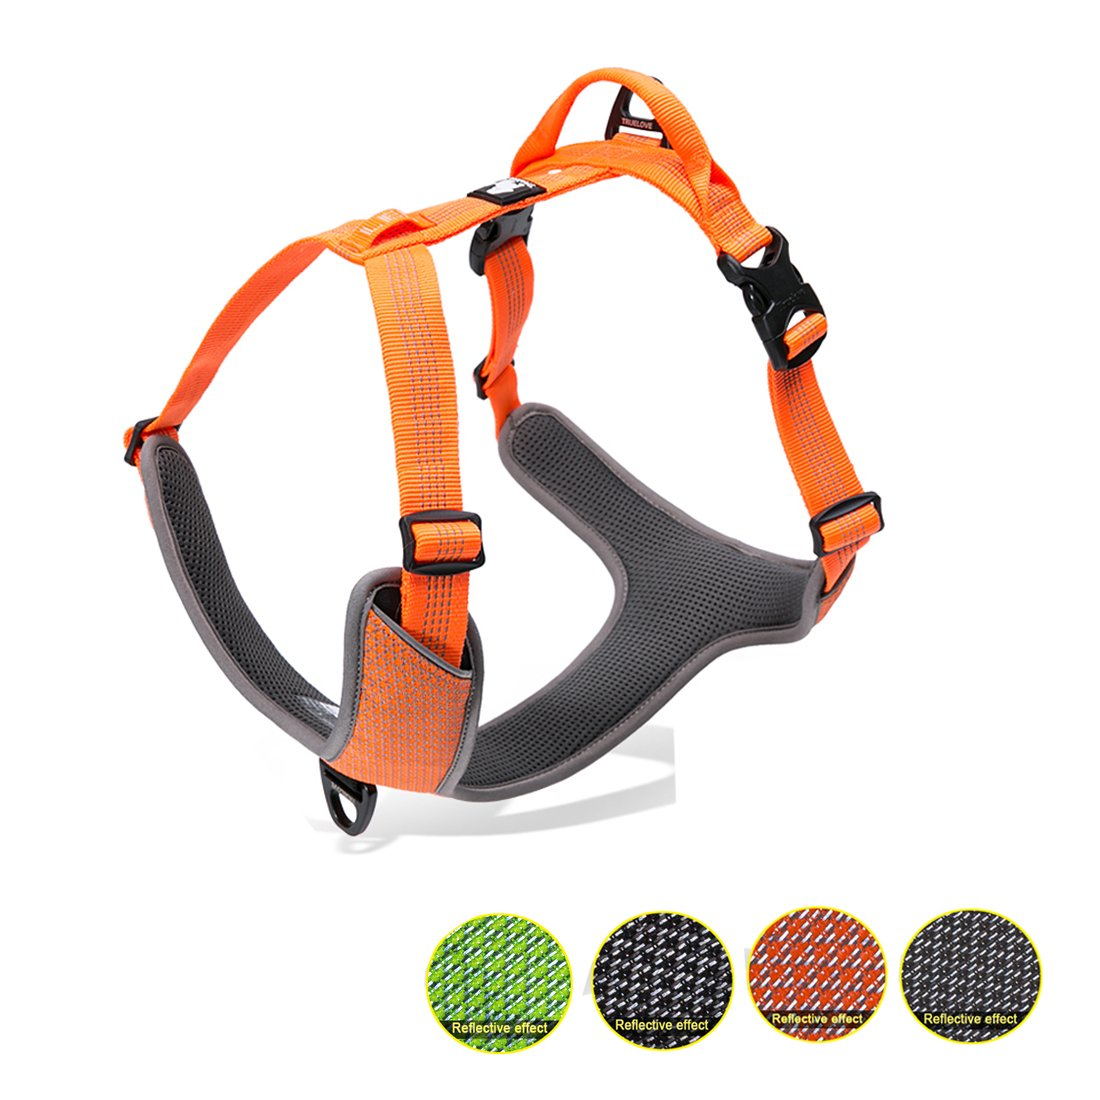 Kaka mall Dogs Vest Harness Front and Back Leading No Pull Padded 3M Reflective for Large Dogs for Outdoor Travel Walking Camping (orange, L)